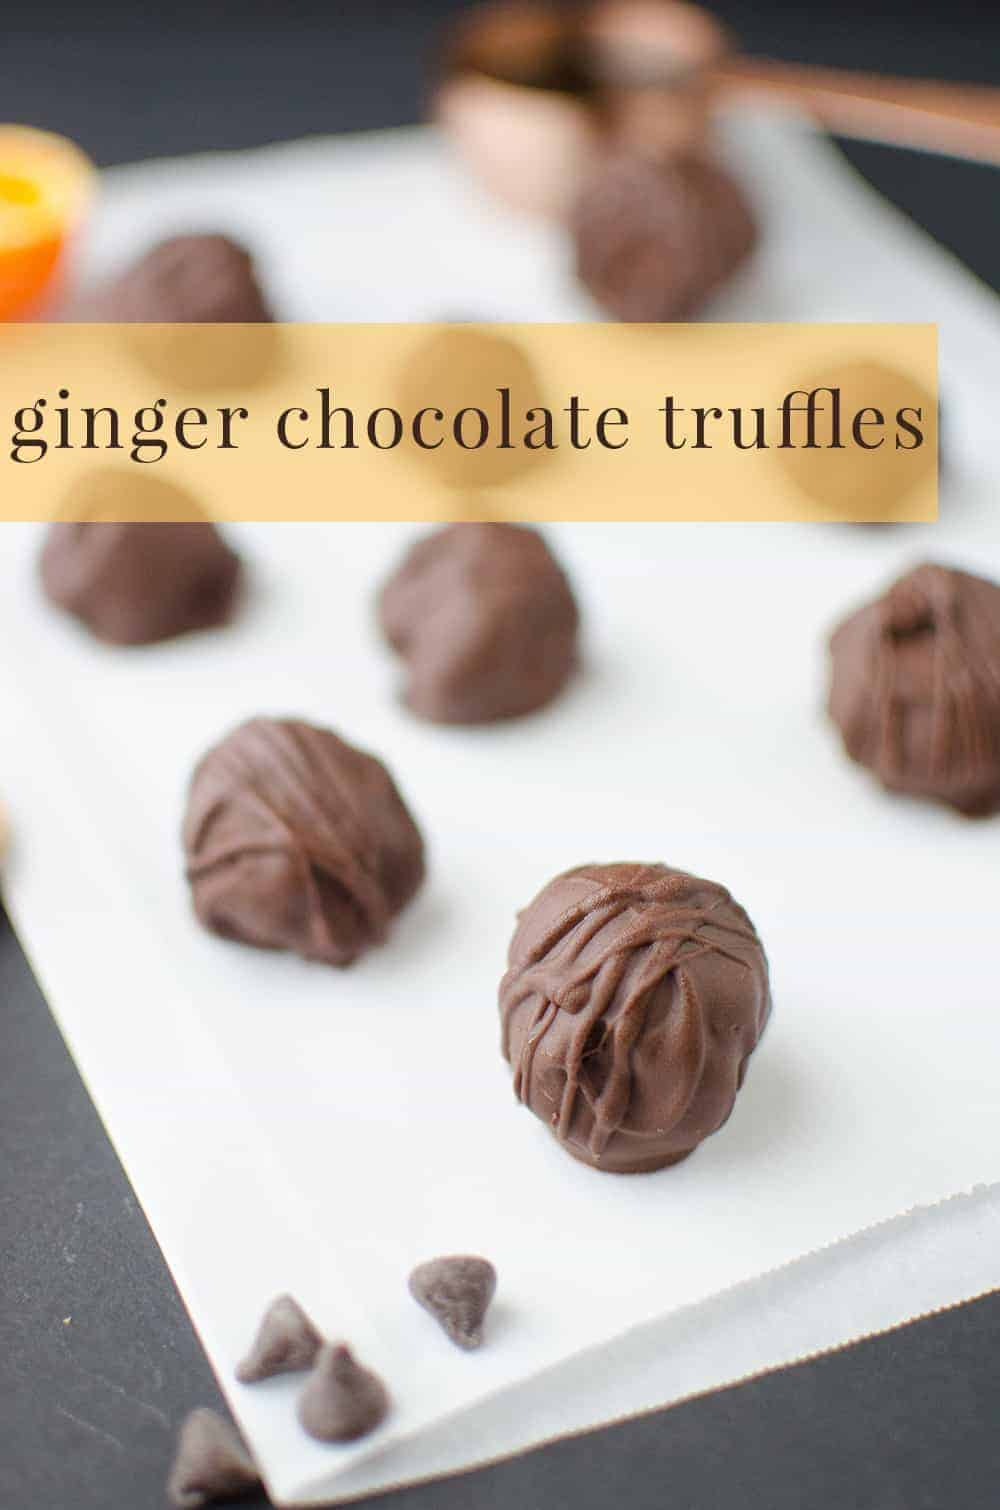 Ginger Chocolate Truffles! Mostly raw, vegan ginger-orange caramels dipped in chocolate! So easy and delicious! Makes a great #DIY #Christmas gift idea!